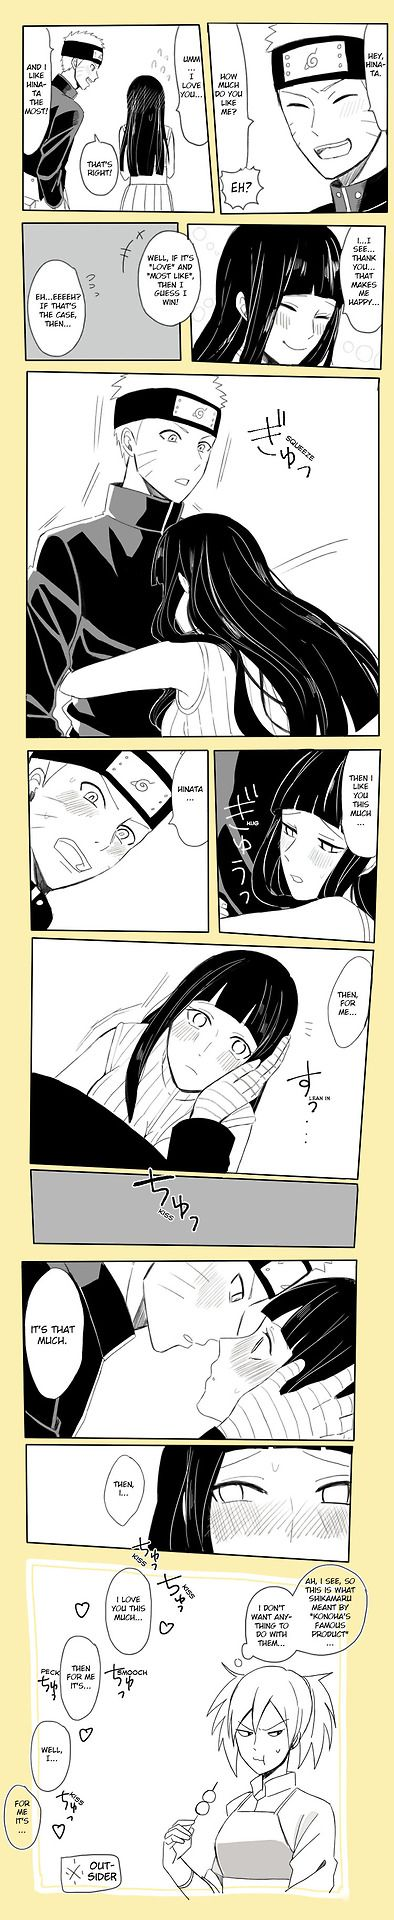 Naruhina: How Much Do you Like me by bluedragonfan.deviantart.com on @DeviantArt So embarrassing xD